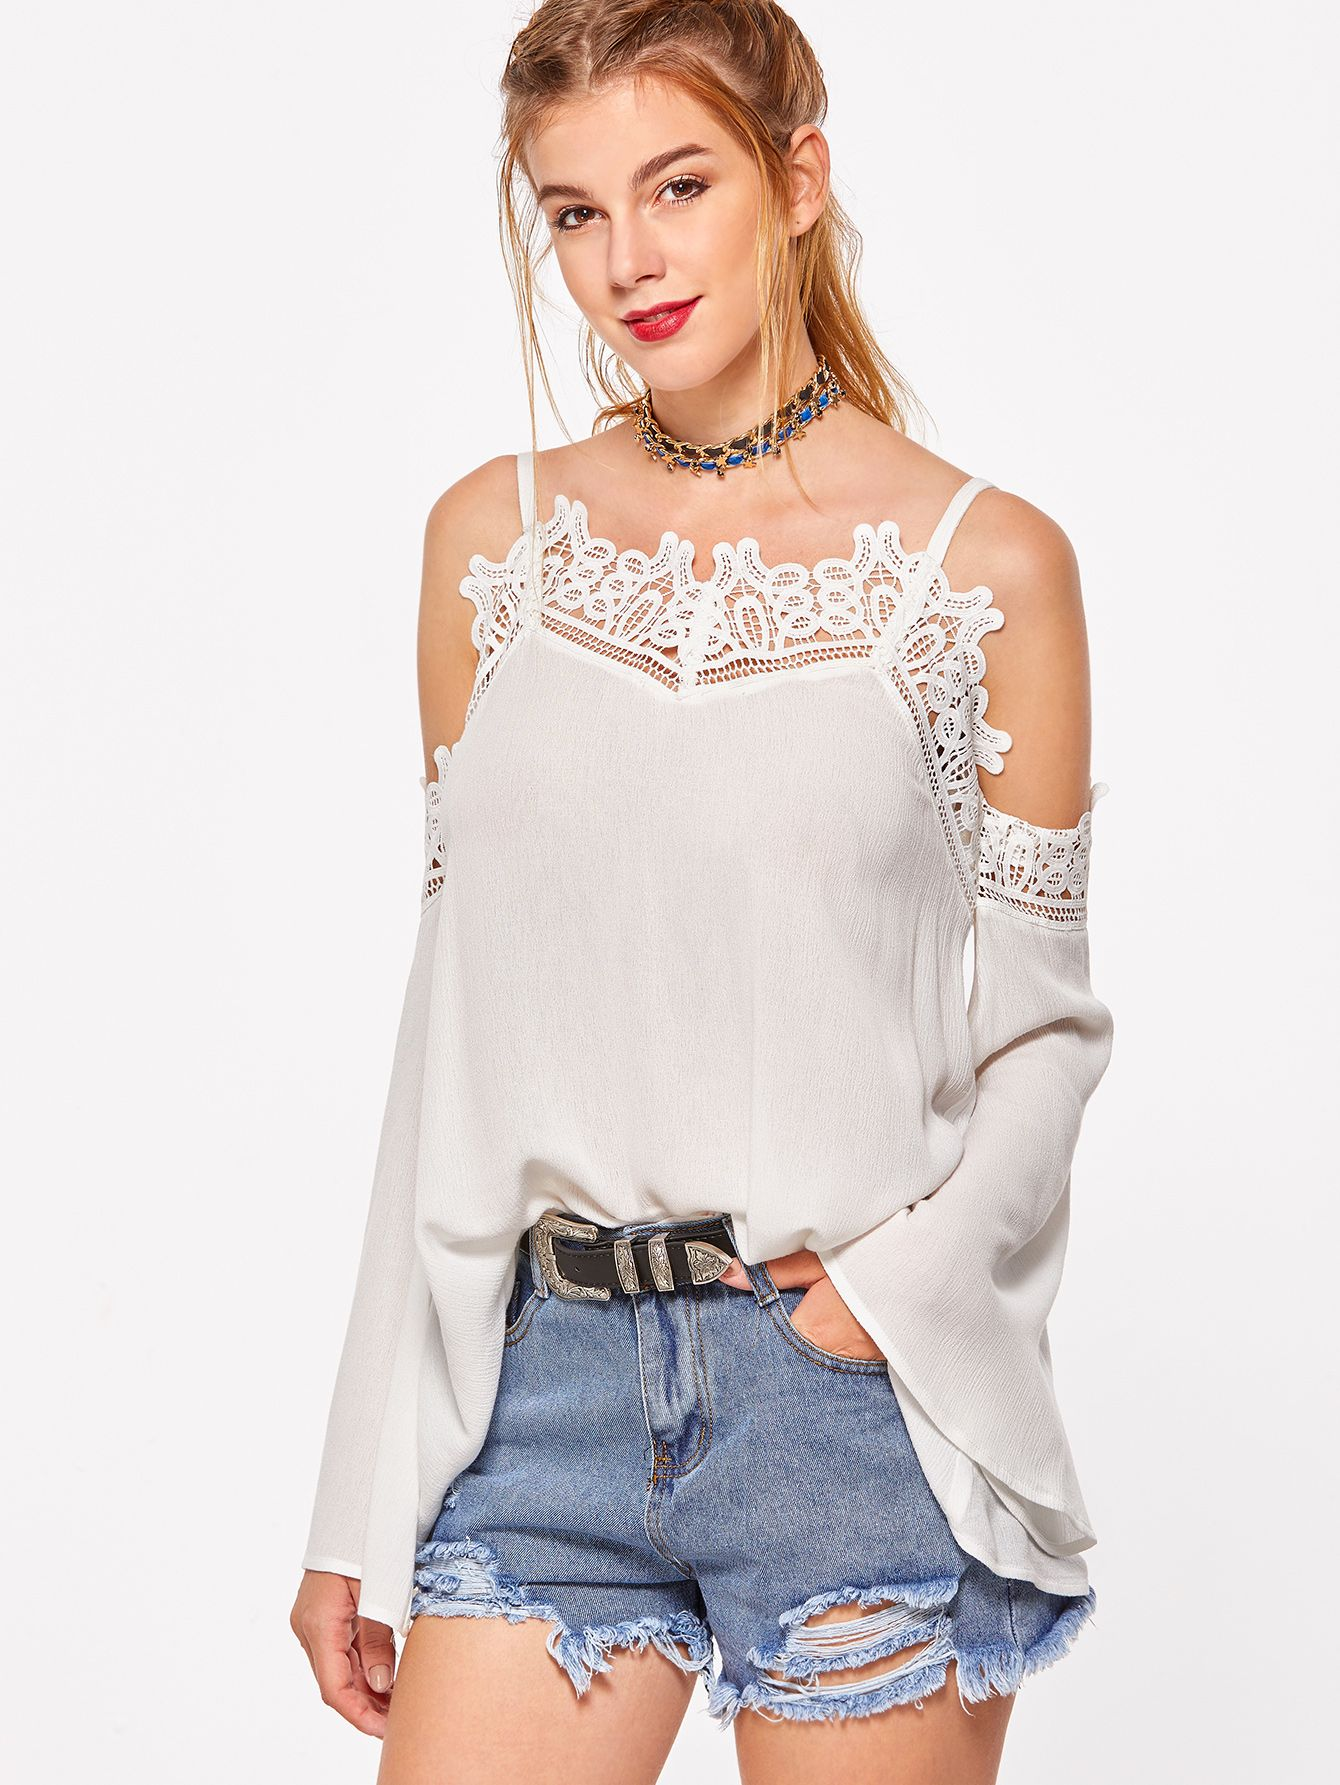 c5ae60fa714 Shop White Lace Trim Cold Shoulder Bell Sleeve Top online. SheIn offers  White Lace Trim Cold Shoulder Bell Sleeve Top & more to fit your fashionable  needs.